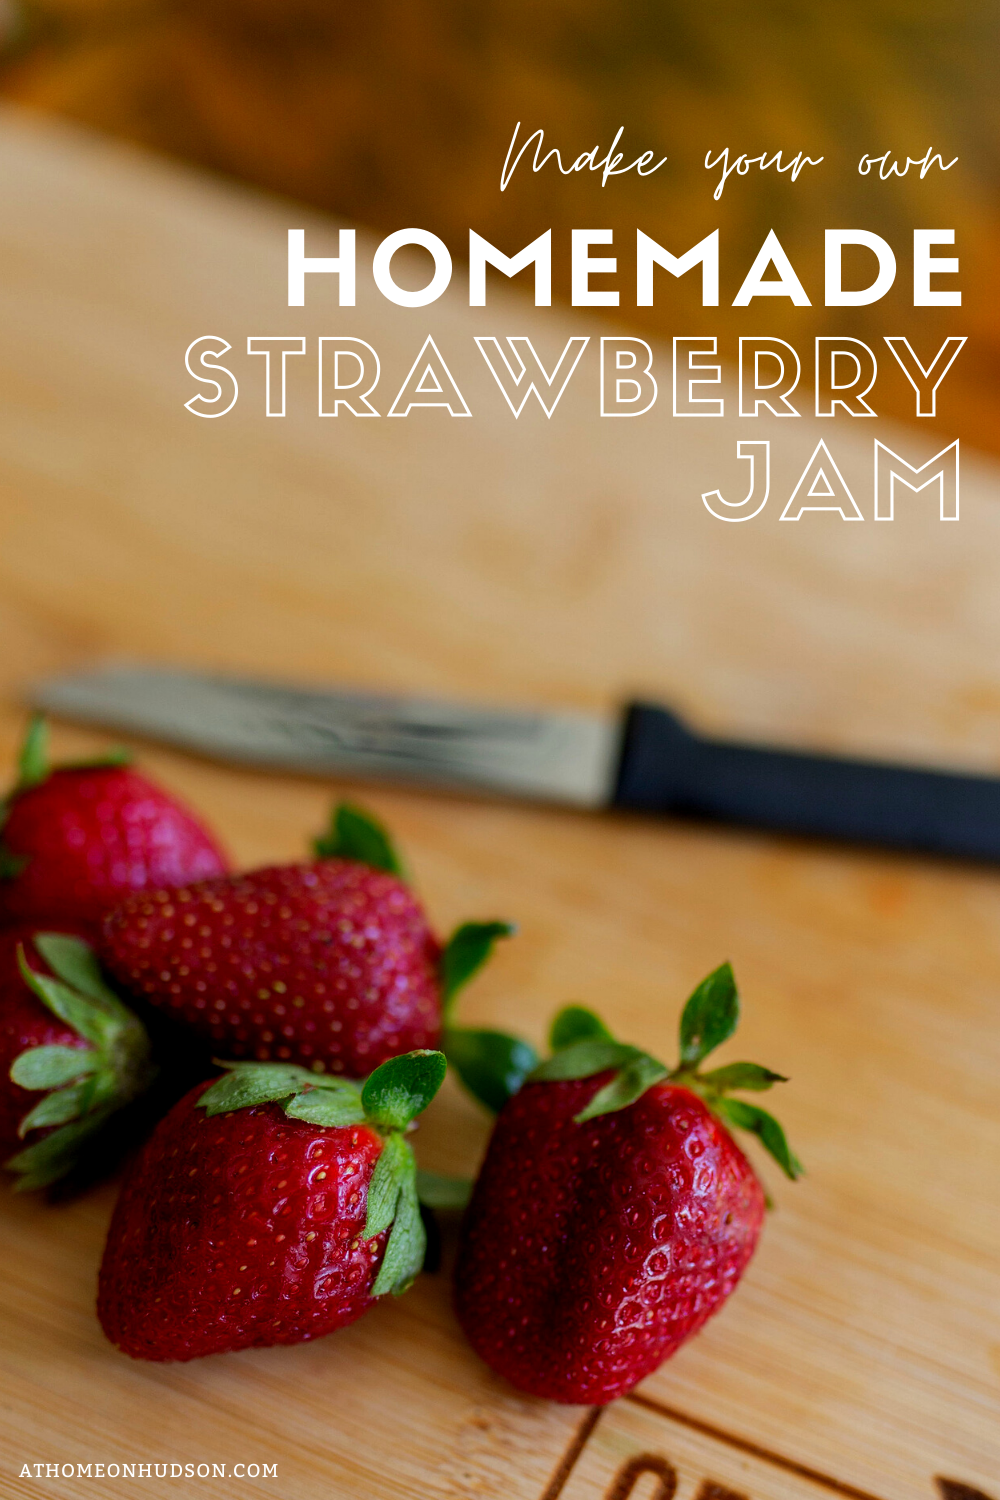 Want your to enjoy your fresh strawberries year round? Follow these easy steps on making your own homemade strawberry jam! #strawberryjam #canning #canningrecipe #surejell #jam